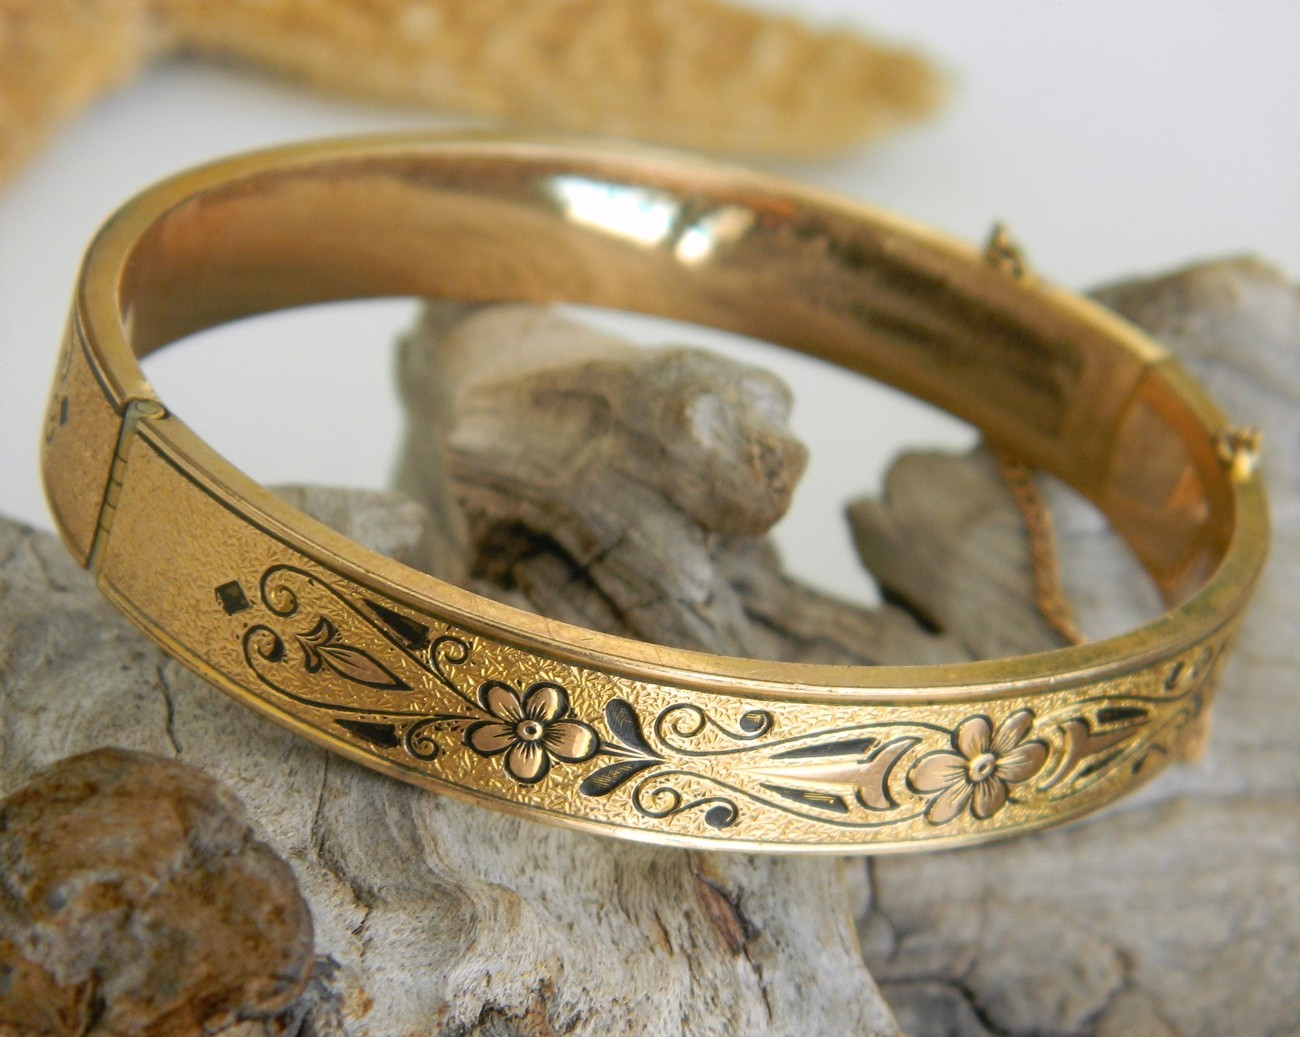 Vintage_10k_gold_filled_hinged_bangle_bracelet_etched_enamel